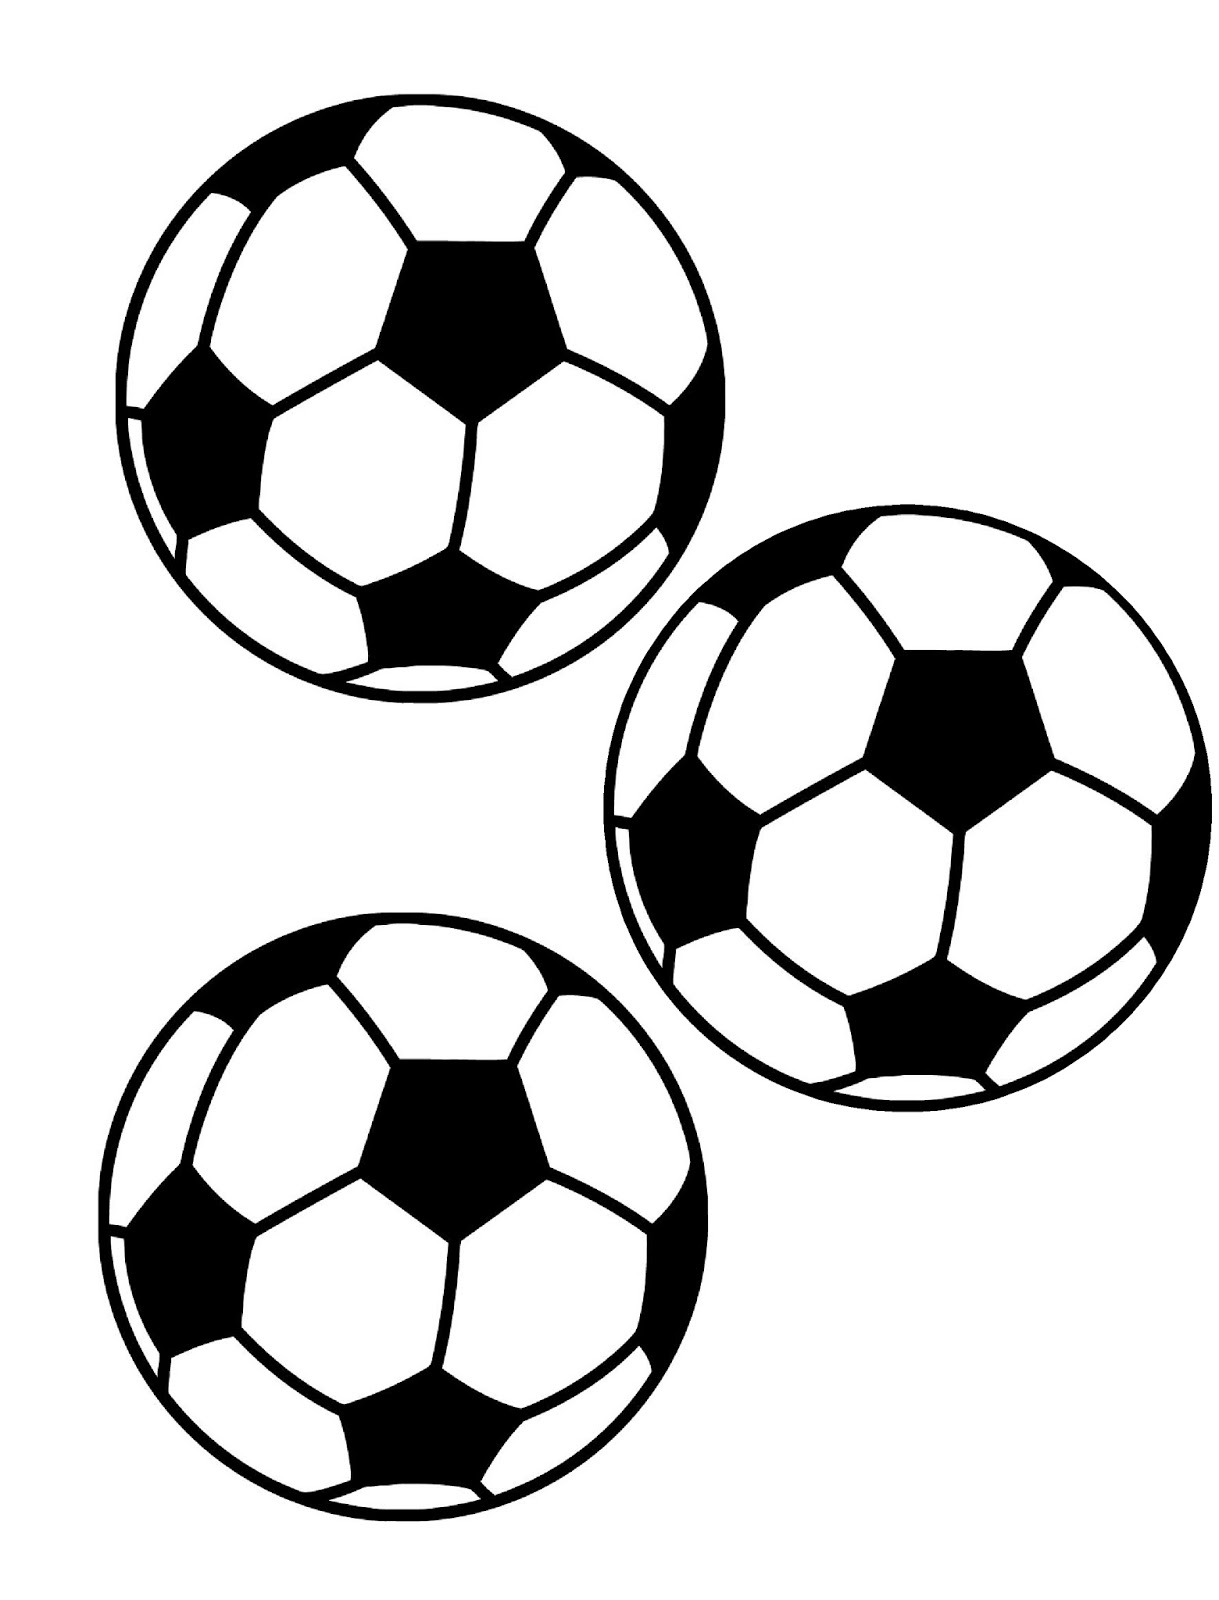 Printable Picture Of A Soccer Ball